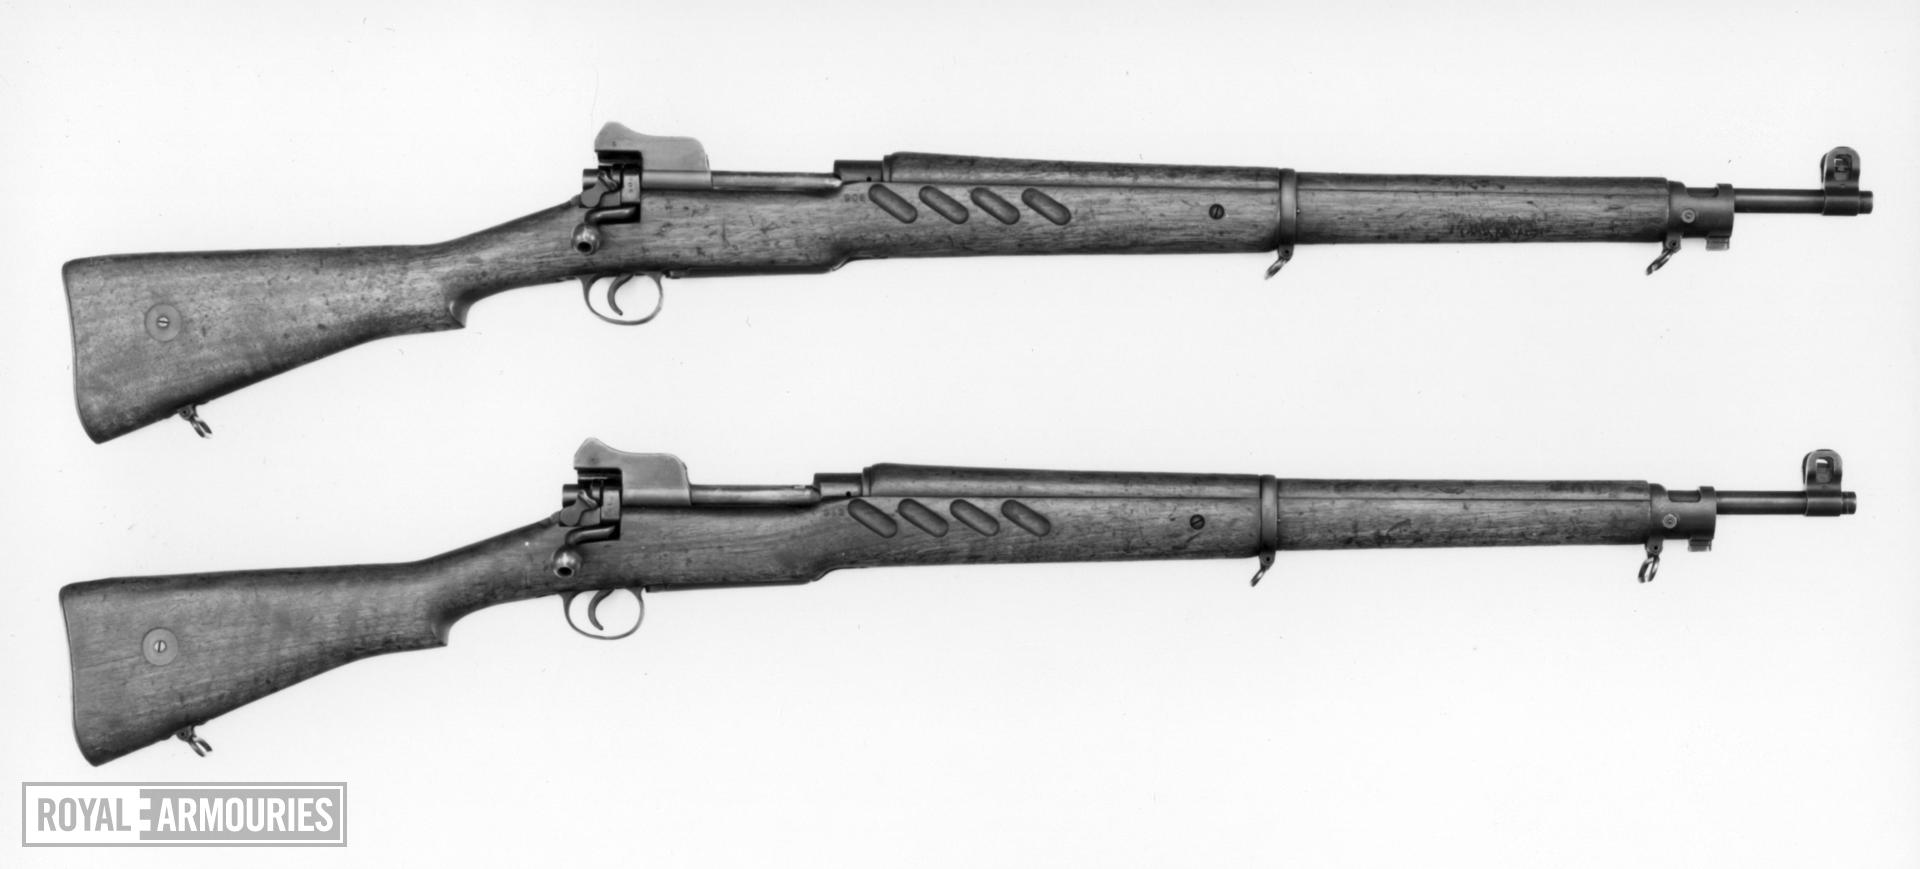 Centrefire bolt-action magazine rifle - Pattern 1913 Also known as the Patt 13 rifle.